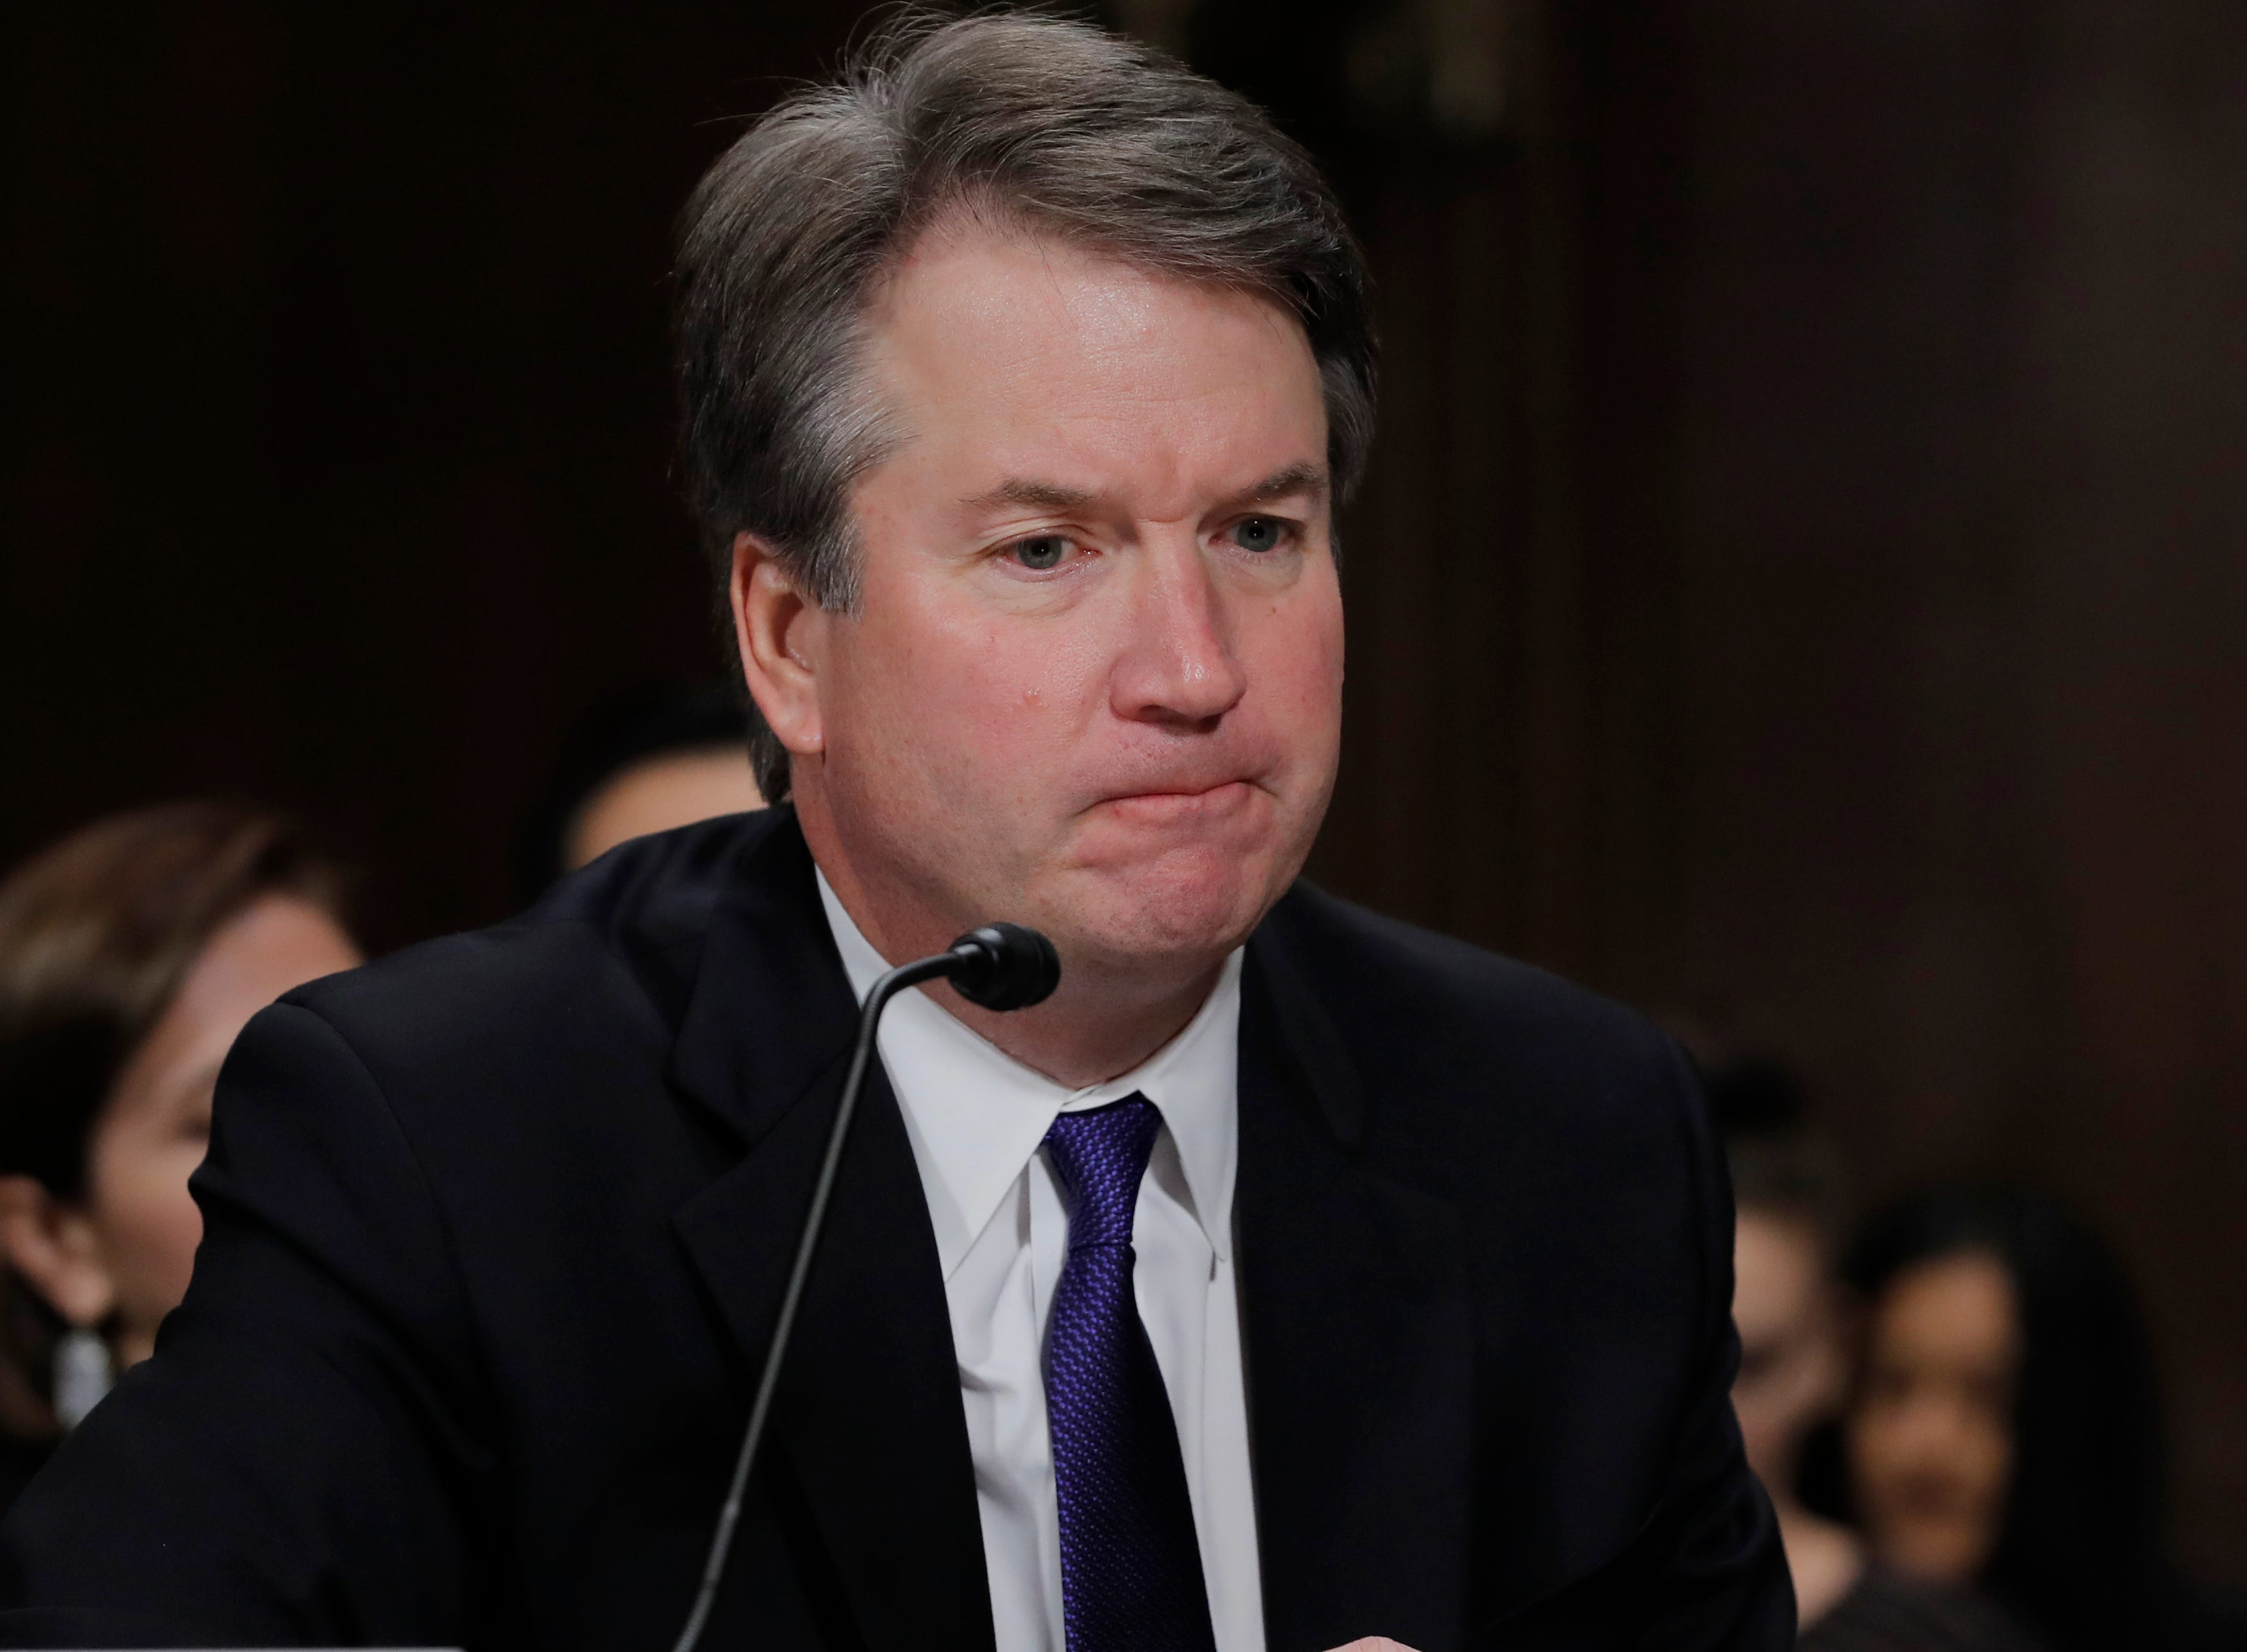 Supreme Court nominee Brett Kavanaugh is pictured testifying before the Senate Judiciary Committee on Capitol Hill.